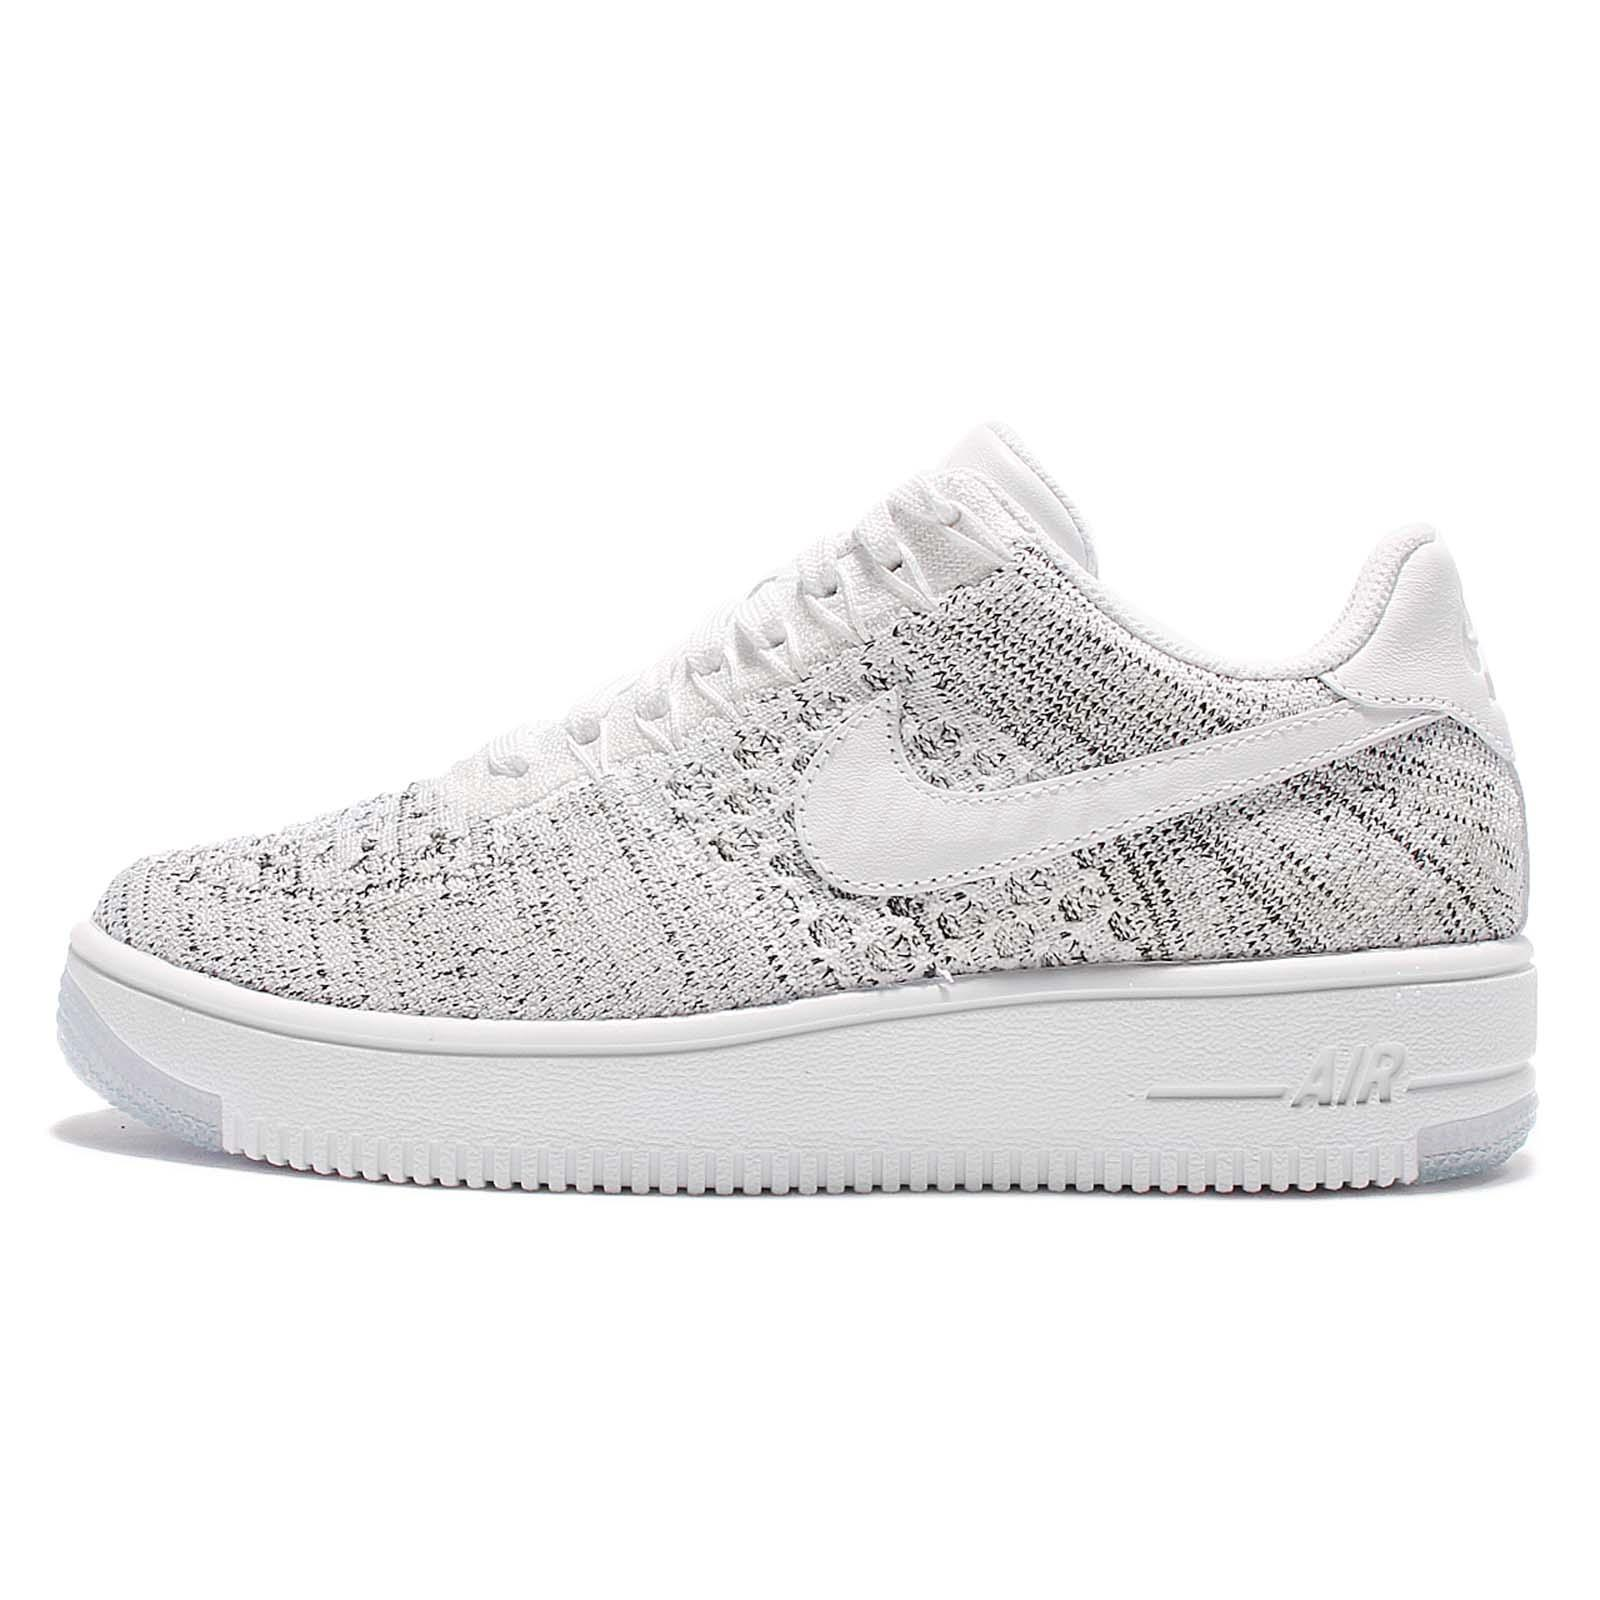 Wmns Nike AF1 Flyknit Low Air Force 1 Womens Shoes Sneakers Pick 1